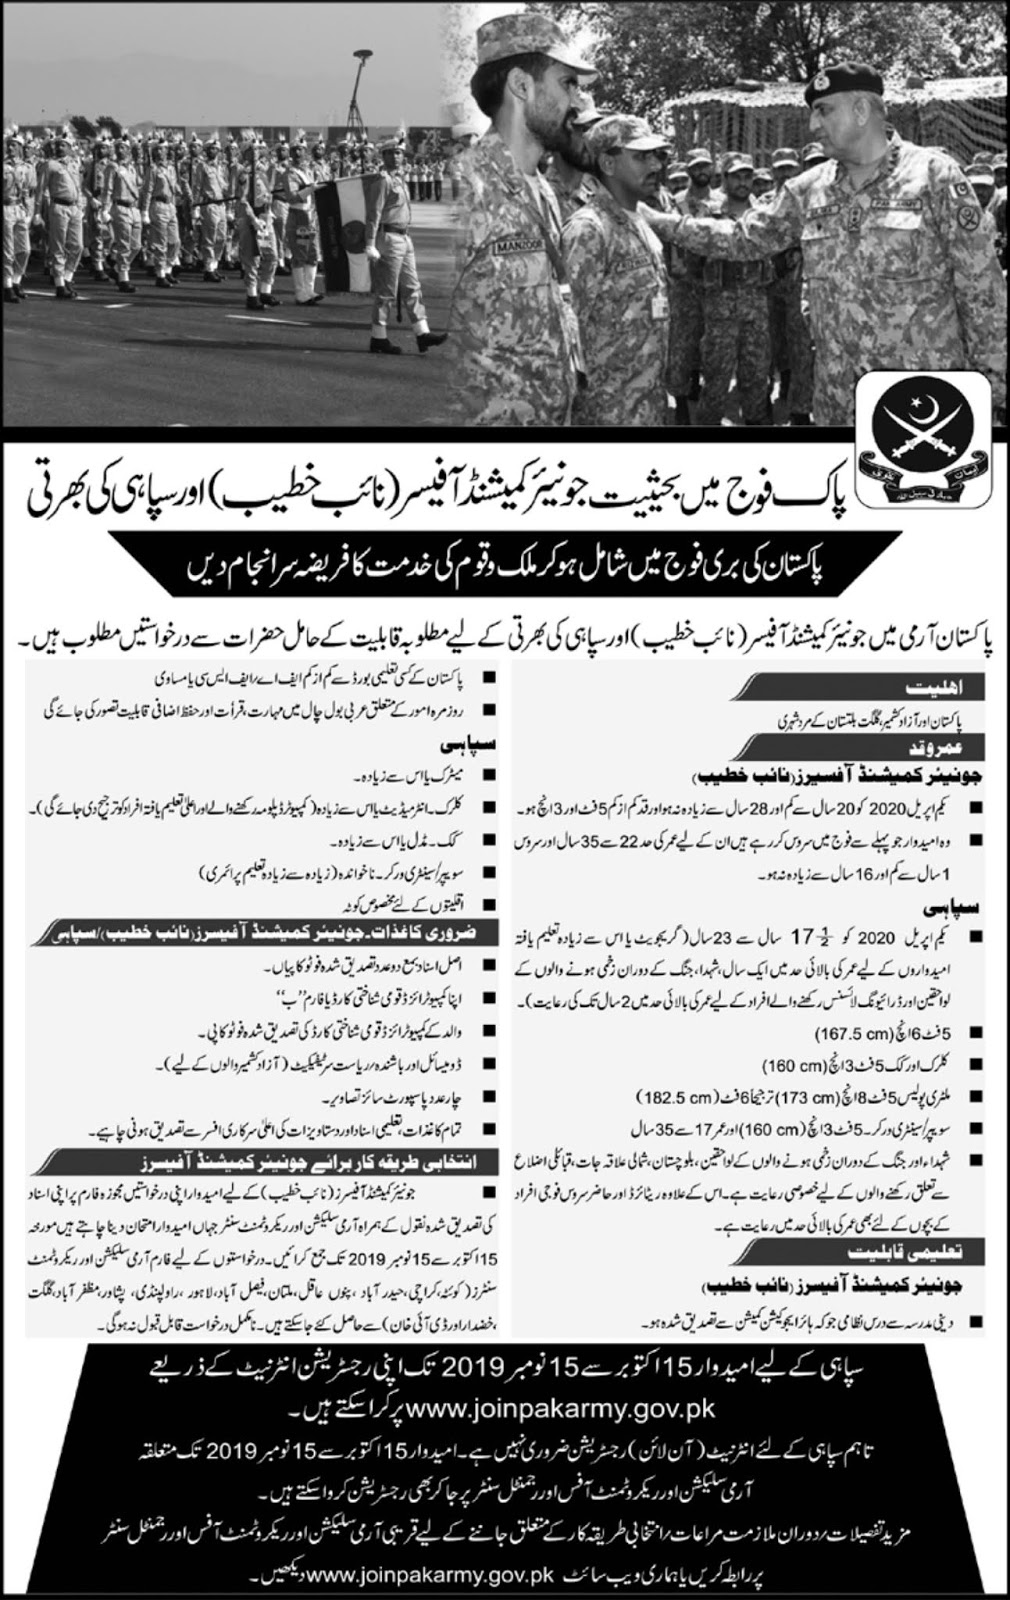 Join Pak Army Jobs 2019 | Sipahi Jobs in Pak Army